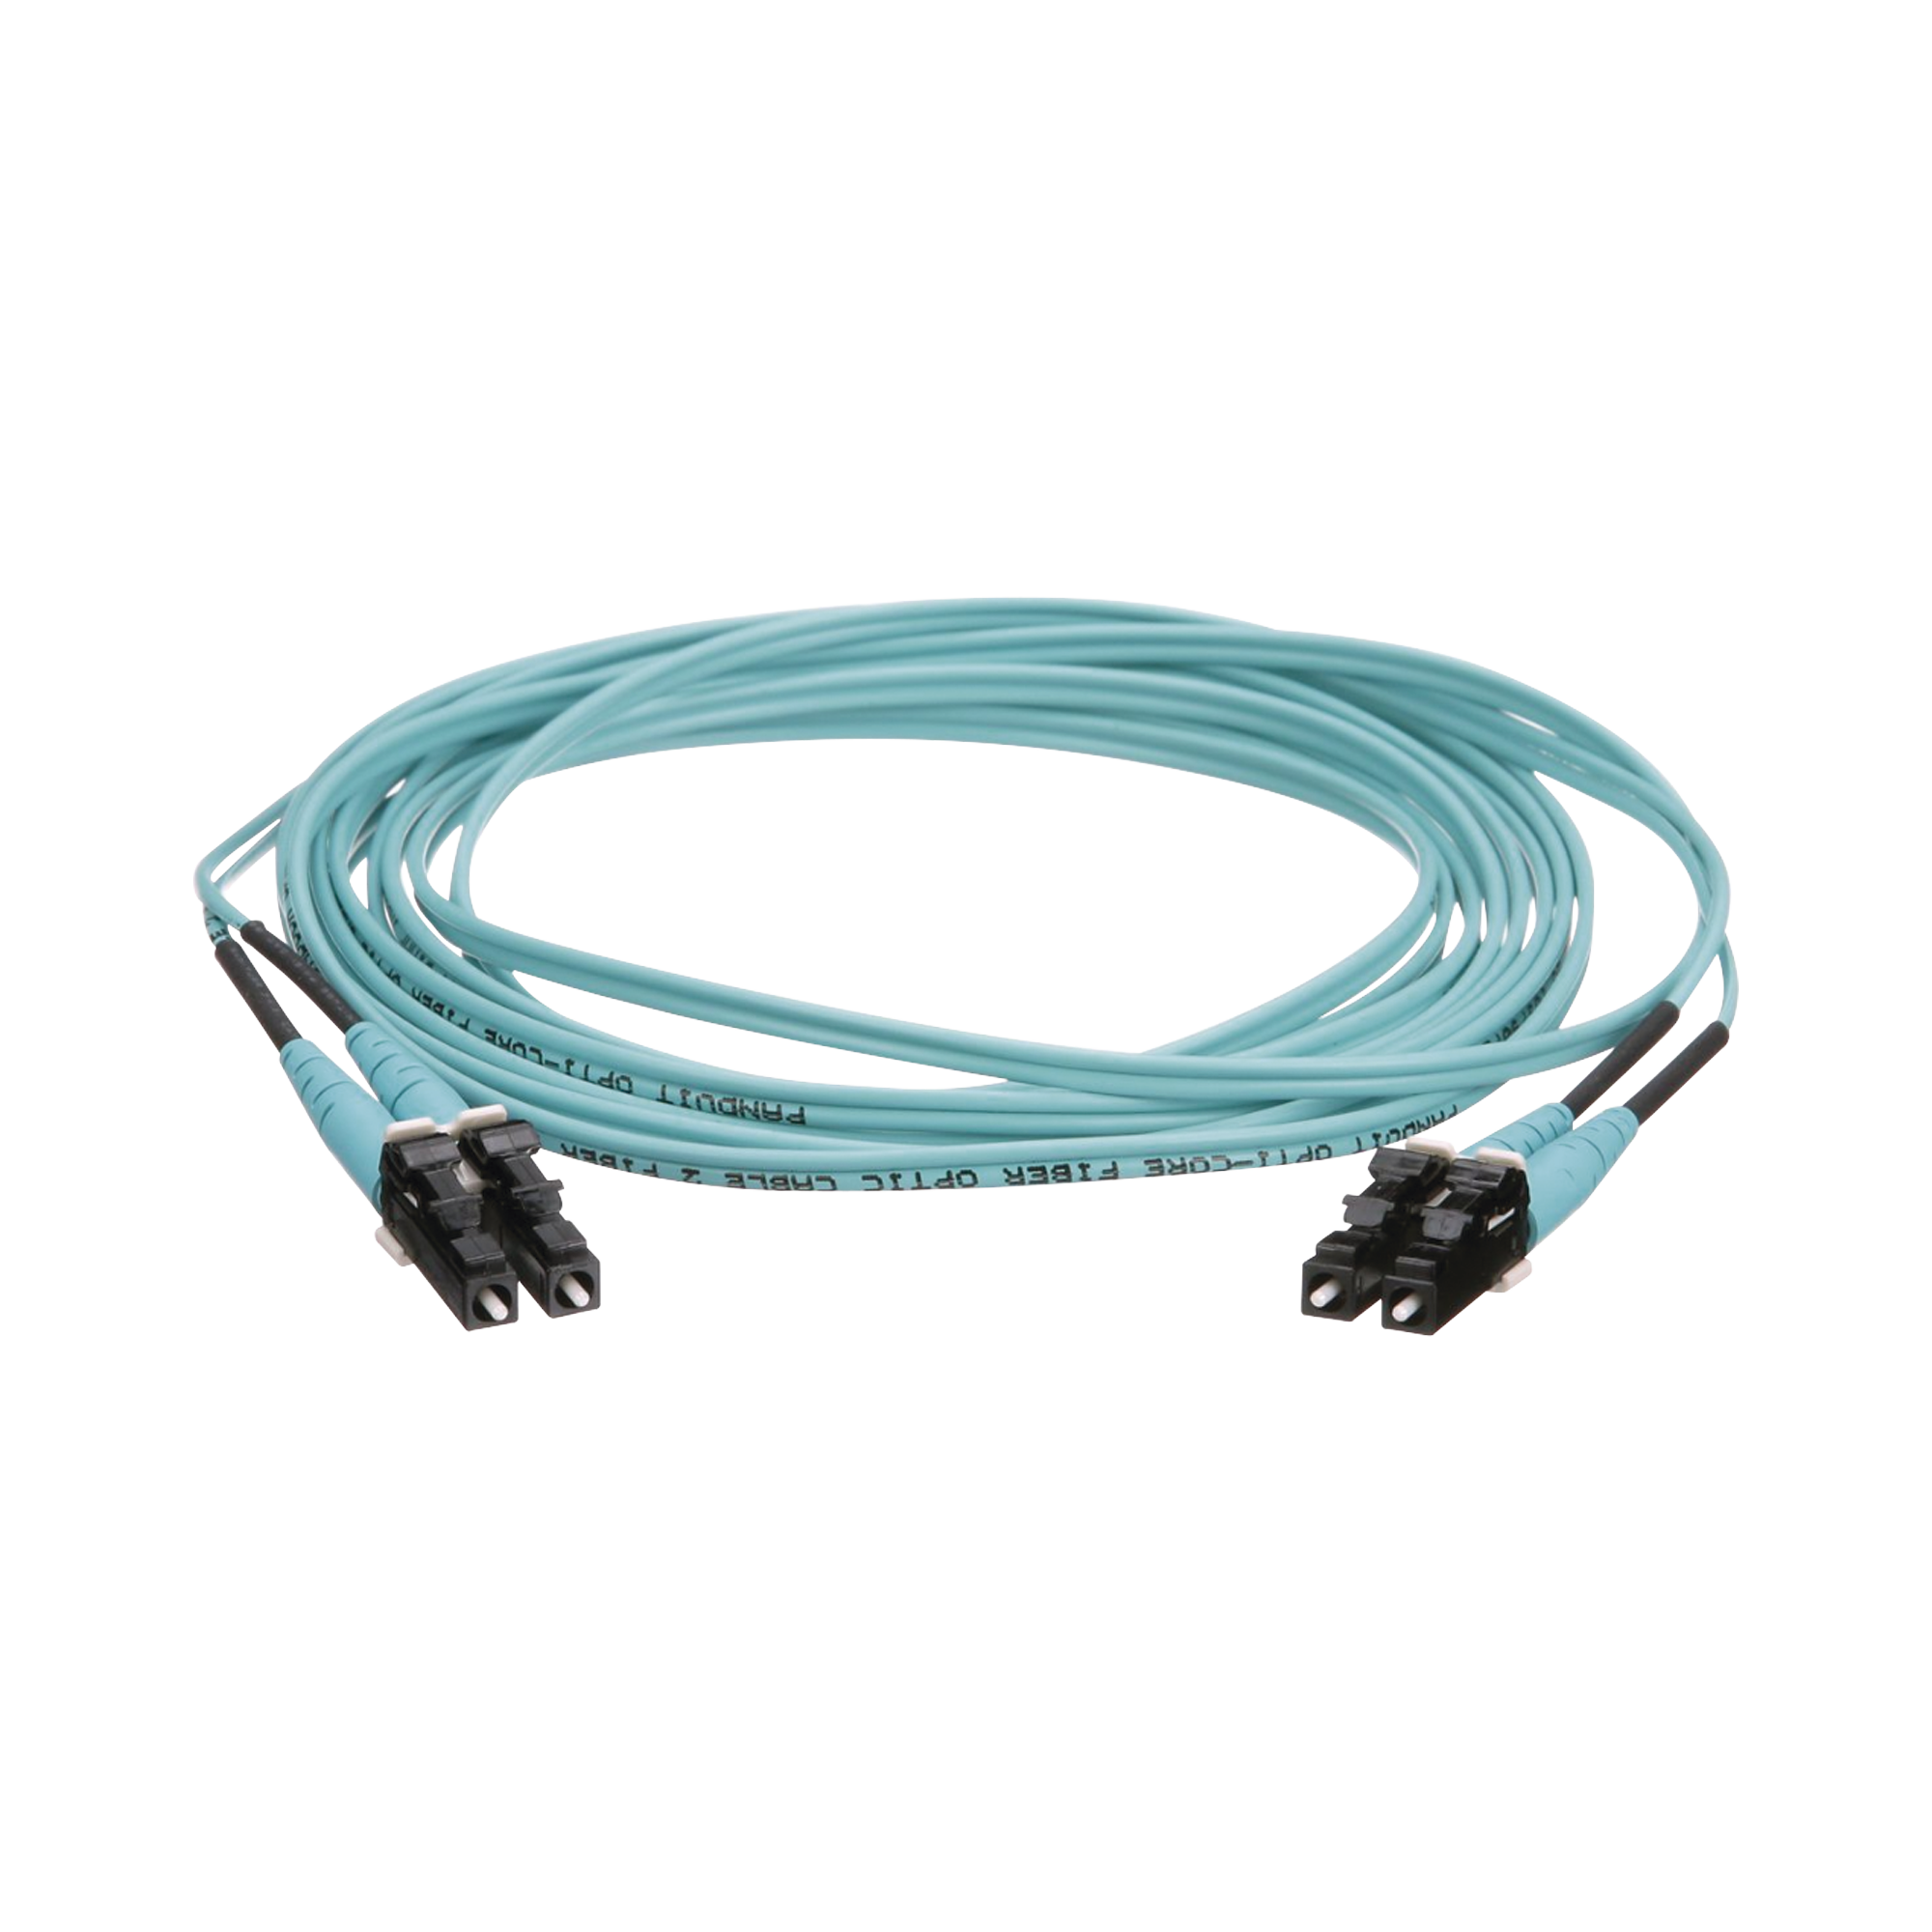 Jumper de Fibra Optica Multimodo 50/125 OM4, LC-LC Duplex, OFNR (Riser), Color Aqua, 3 Metros